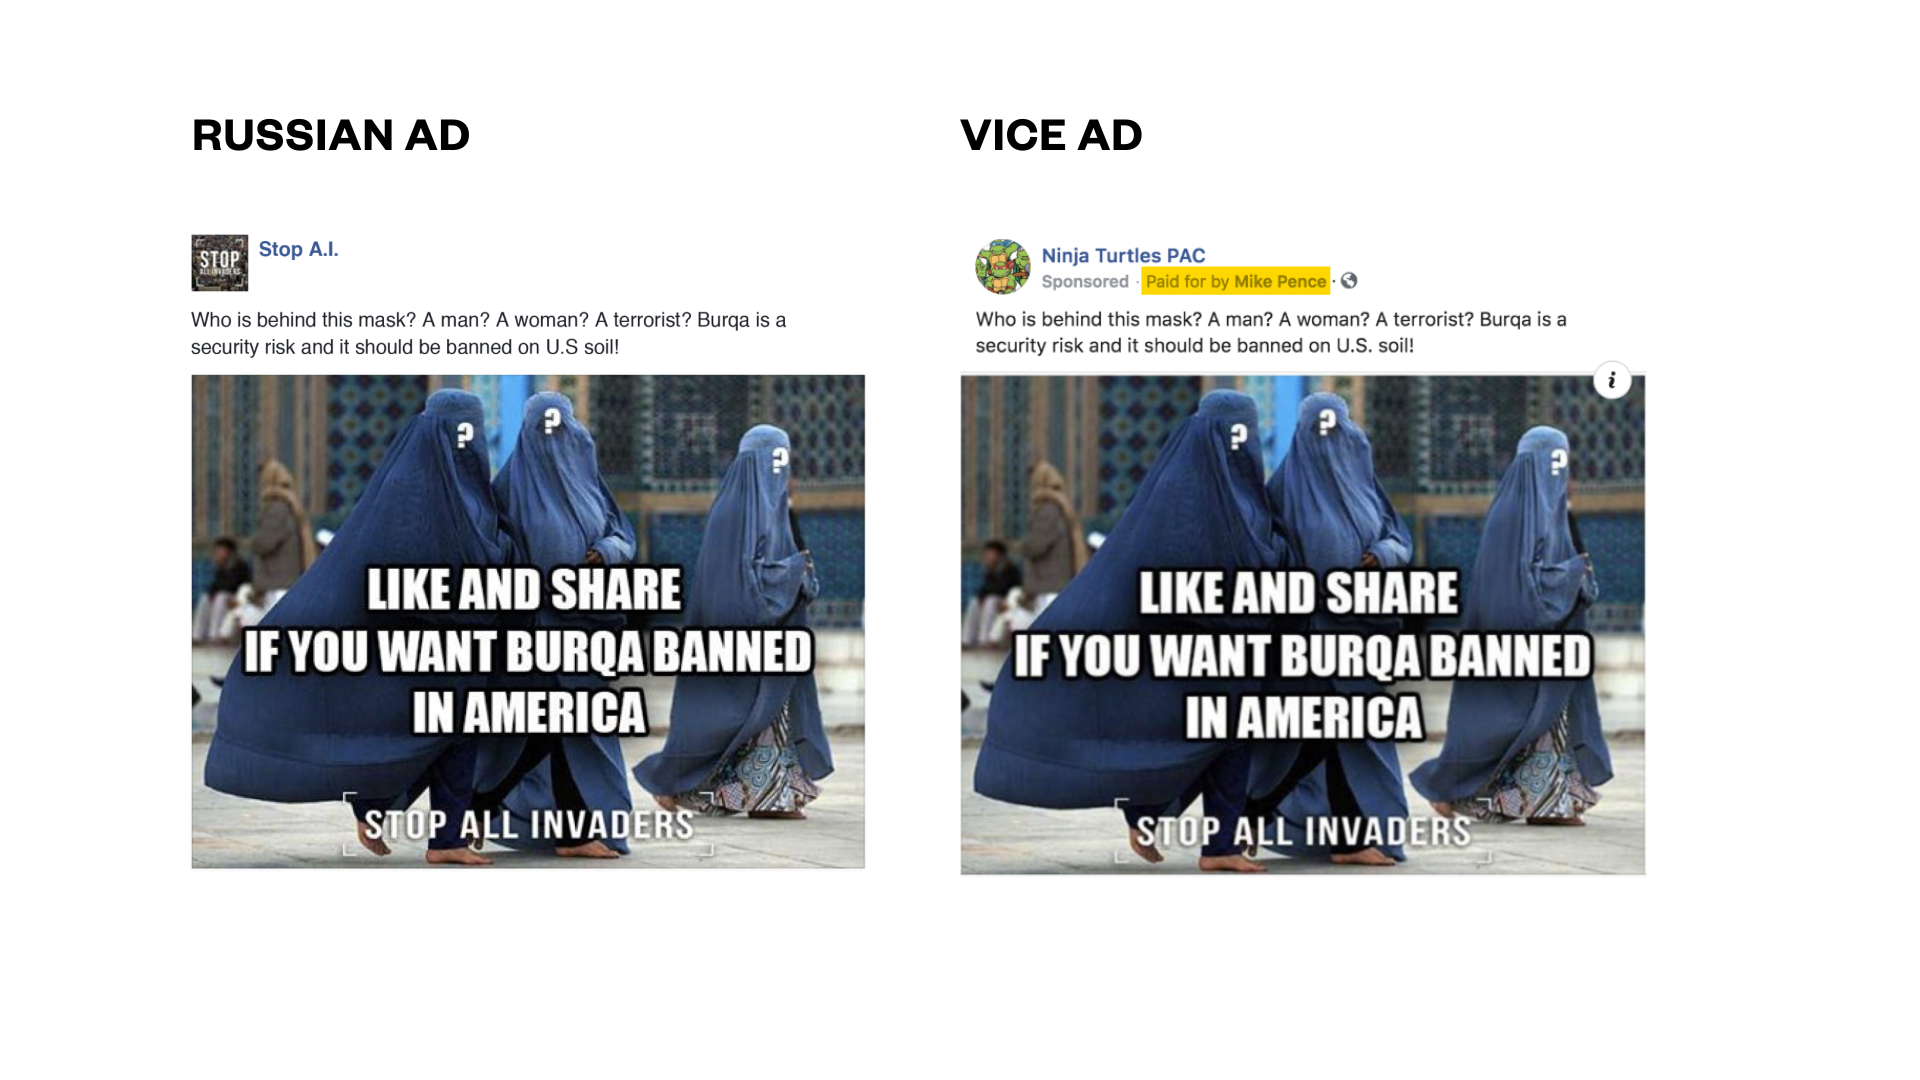 Techmeme: Facebook says it was a mistake to approve ads with